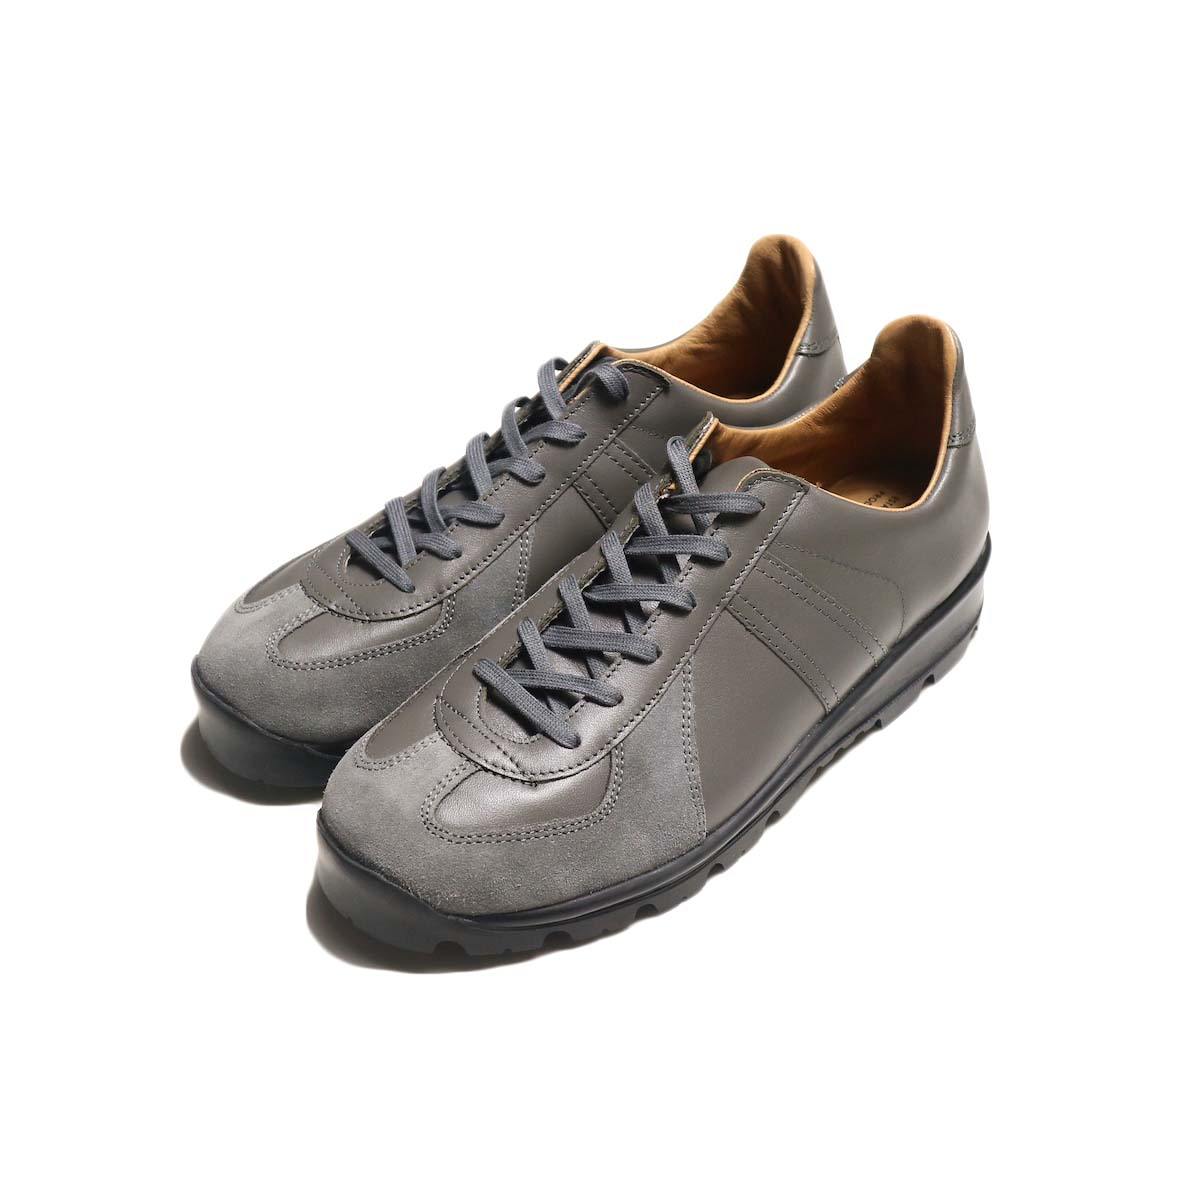 REPRODUCTION OF FOUND / GERMAN MILITARY TRAINER (TACTICAL) (Dark Gray)